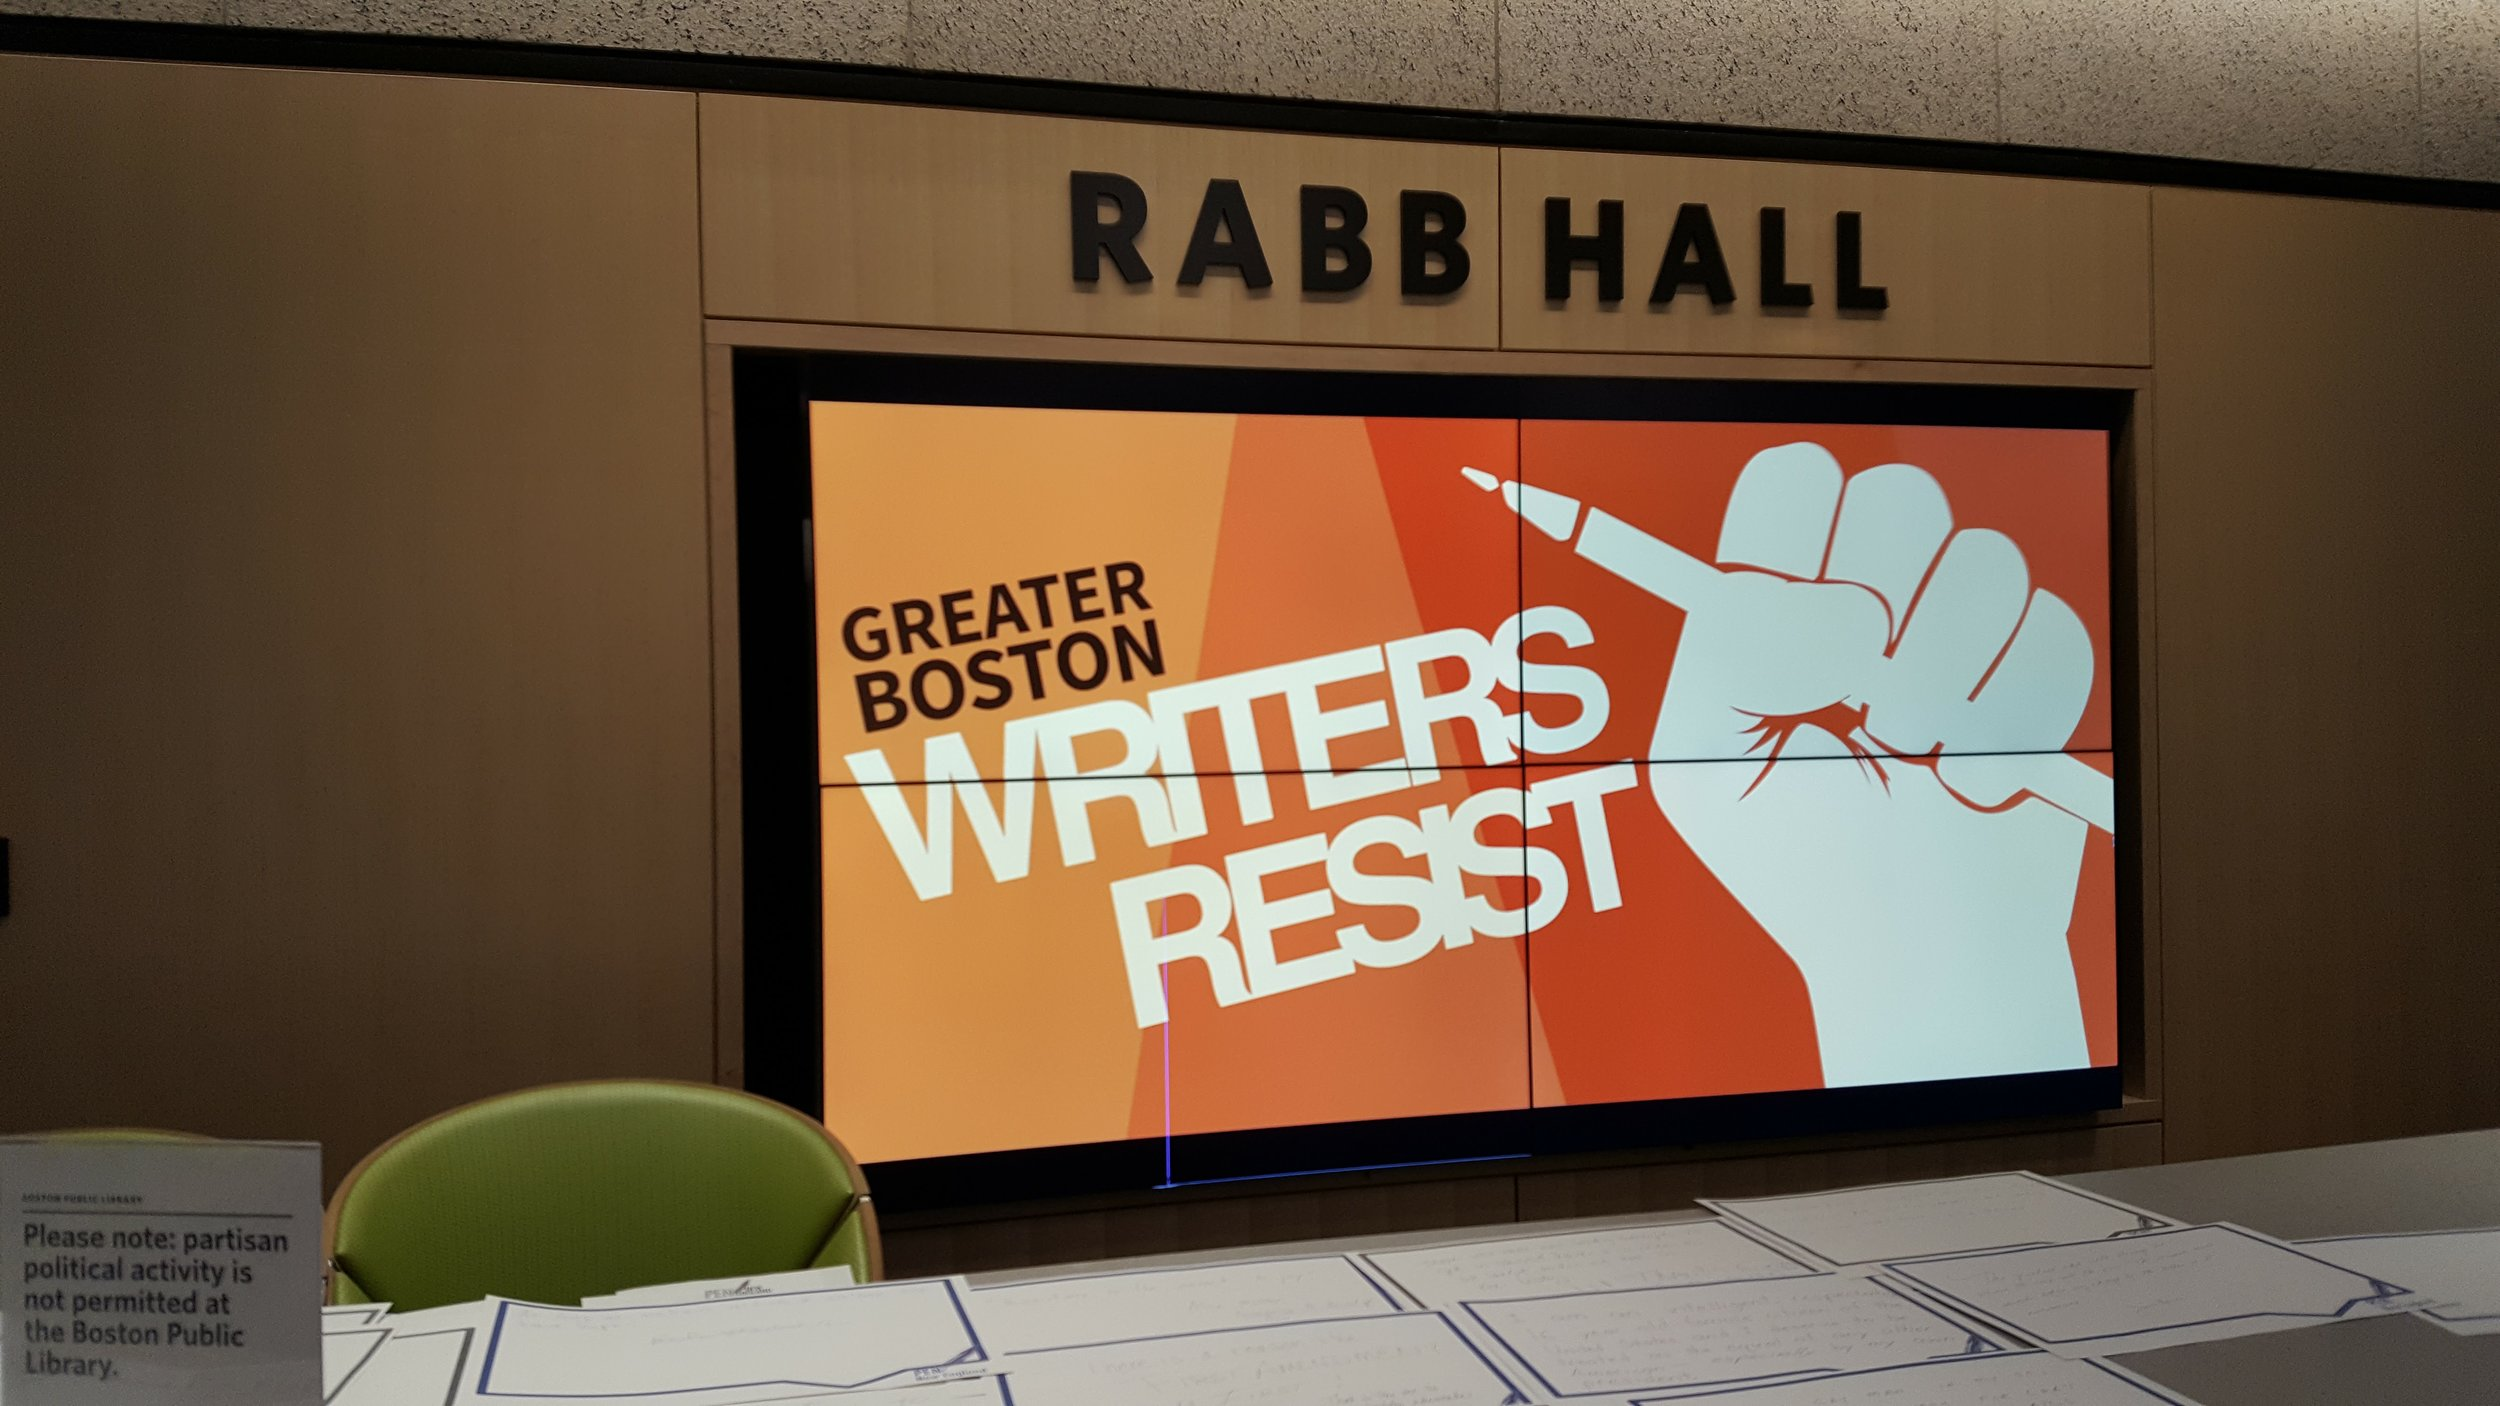 At the Writers Resist Event at the Boston Public Library